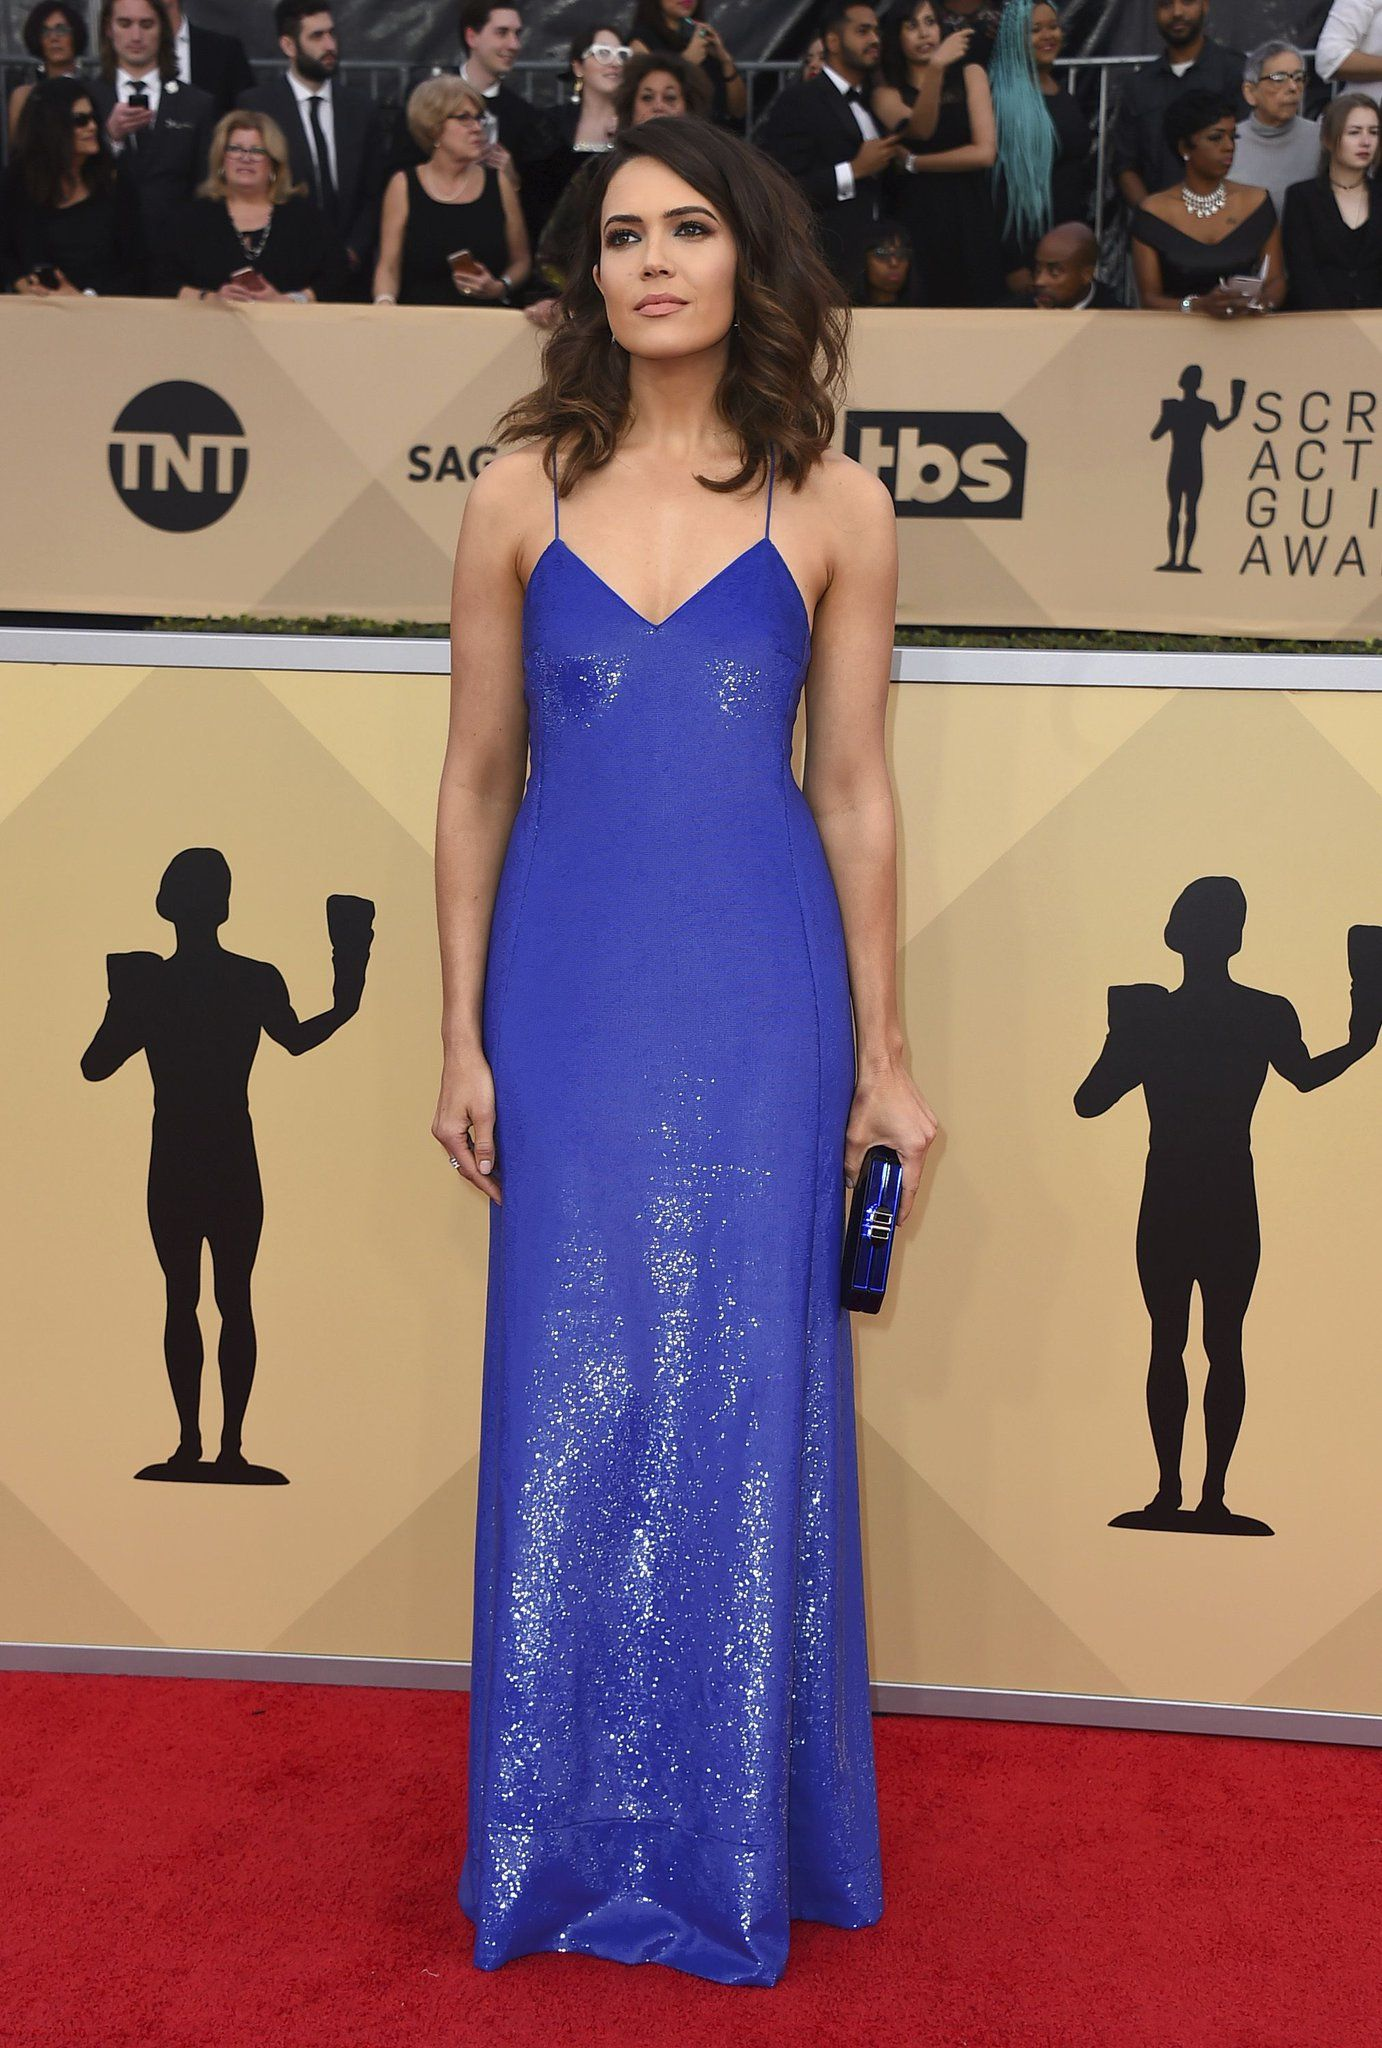 6471032f7353 Mandy Moore in Ralph Lauren attends the 24th Annual Screen Actors Guild  Awards. #bestdressed